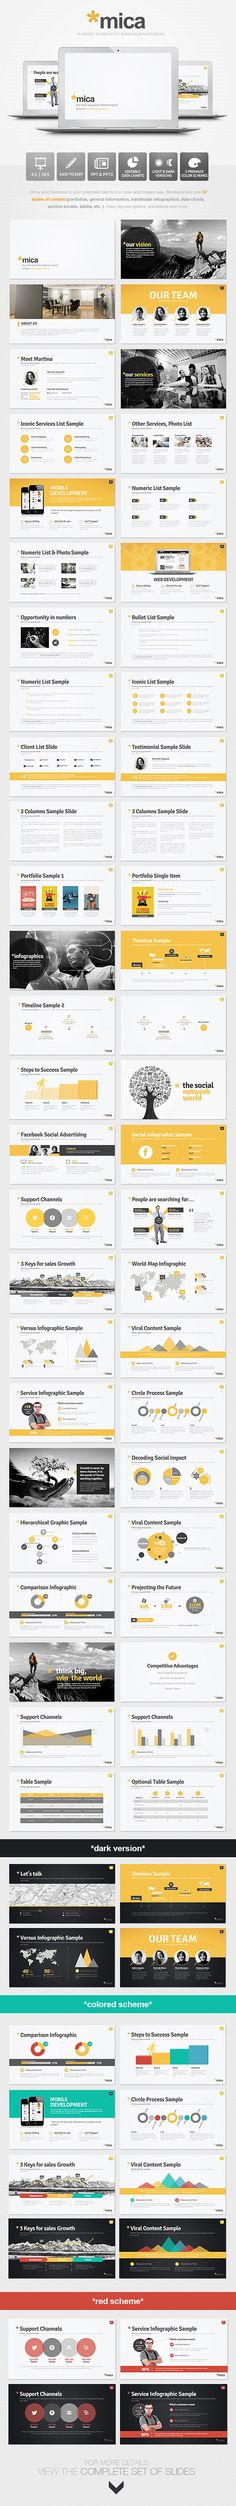 Bloes Powerpoint Presentation Template  Powerpoint Presentation